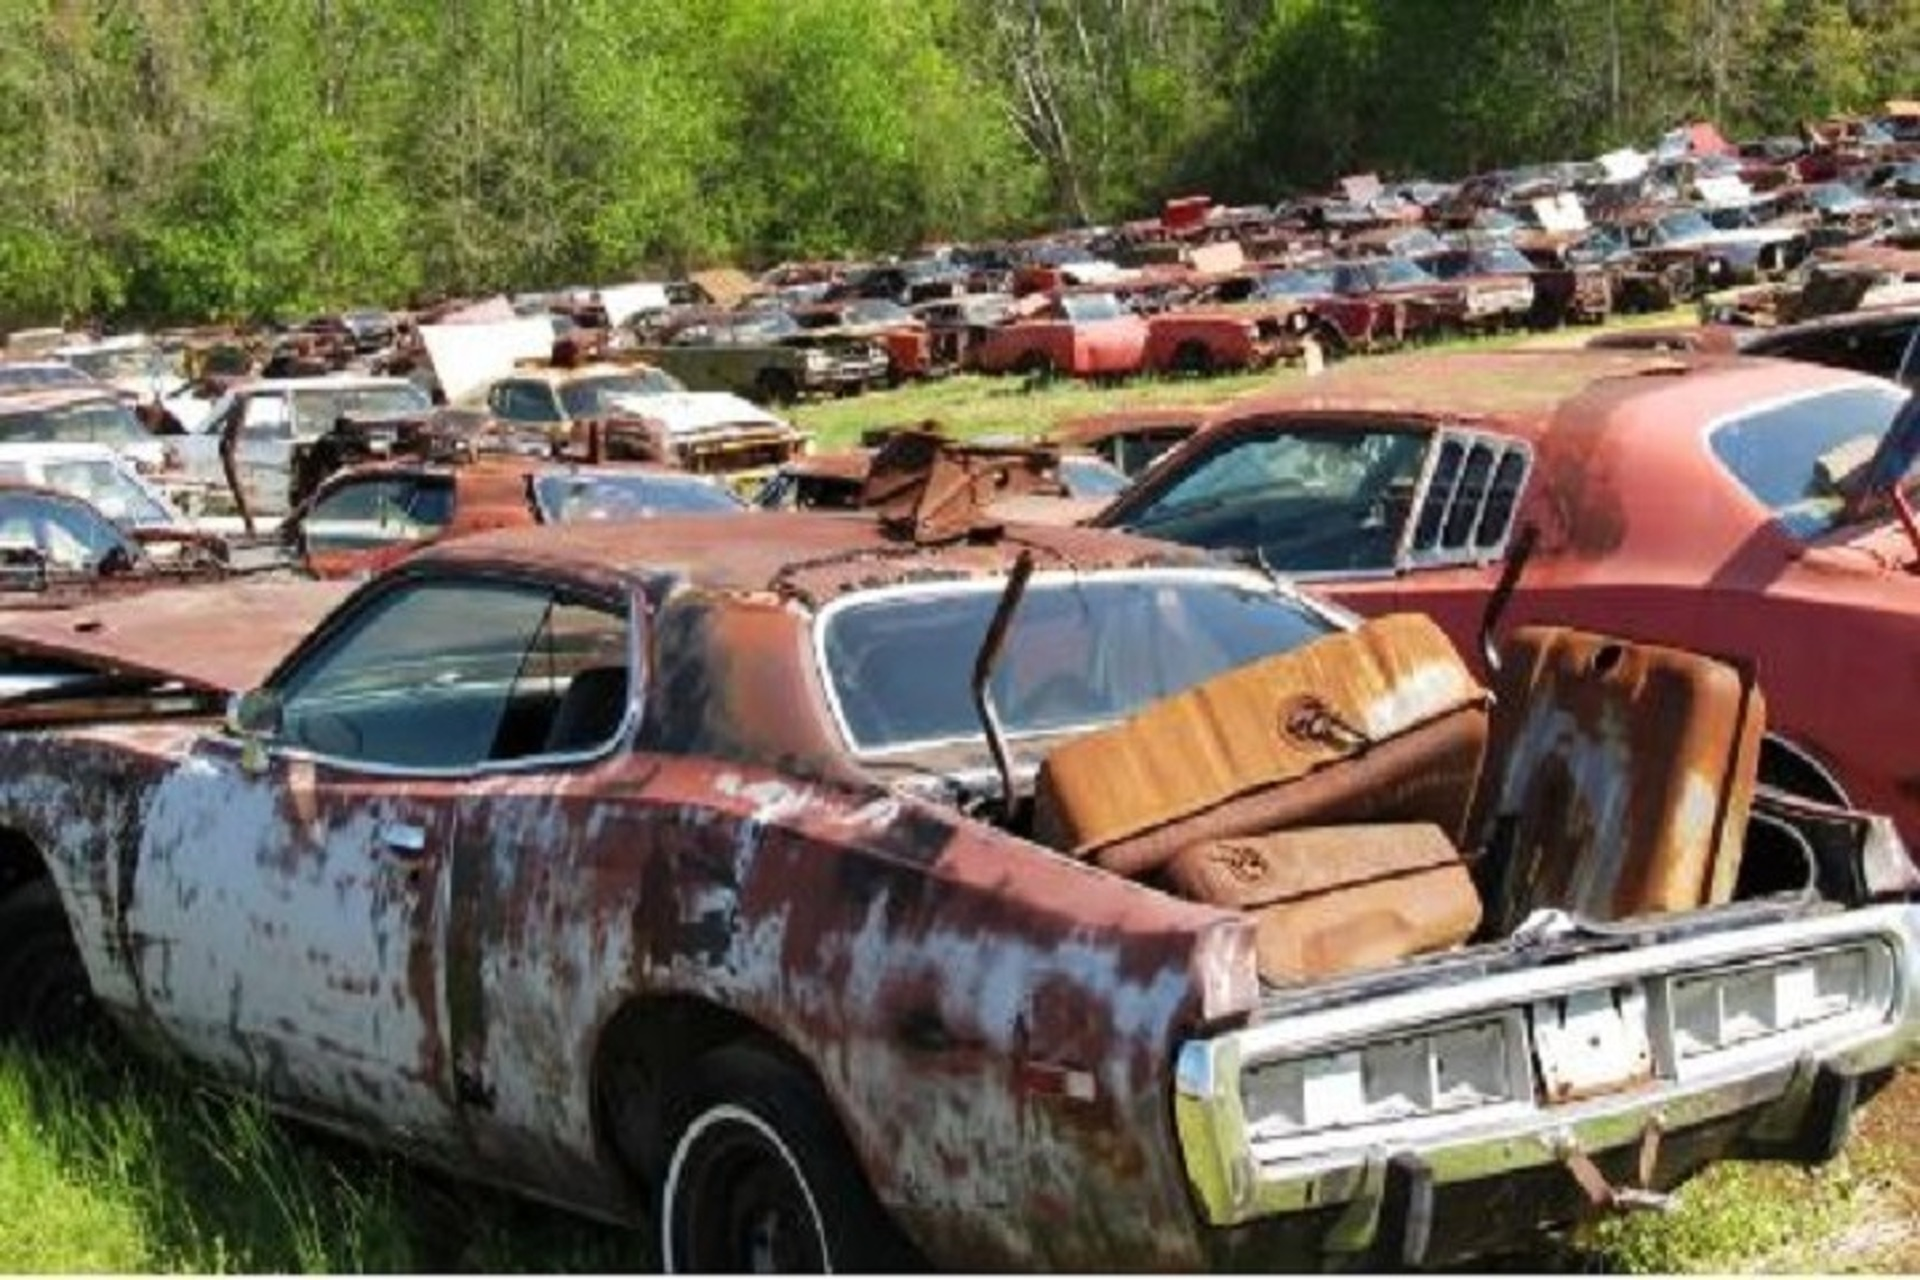 700+ Abandoned Dodges Sitting in an Alabama Lot